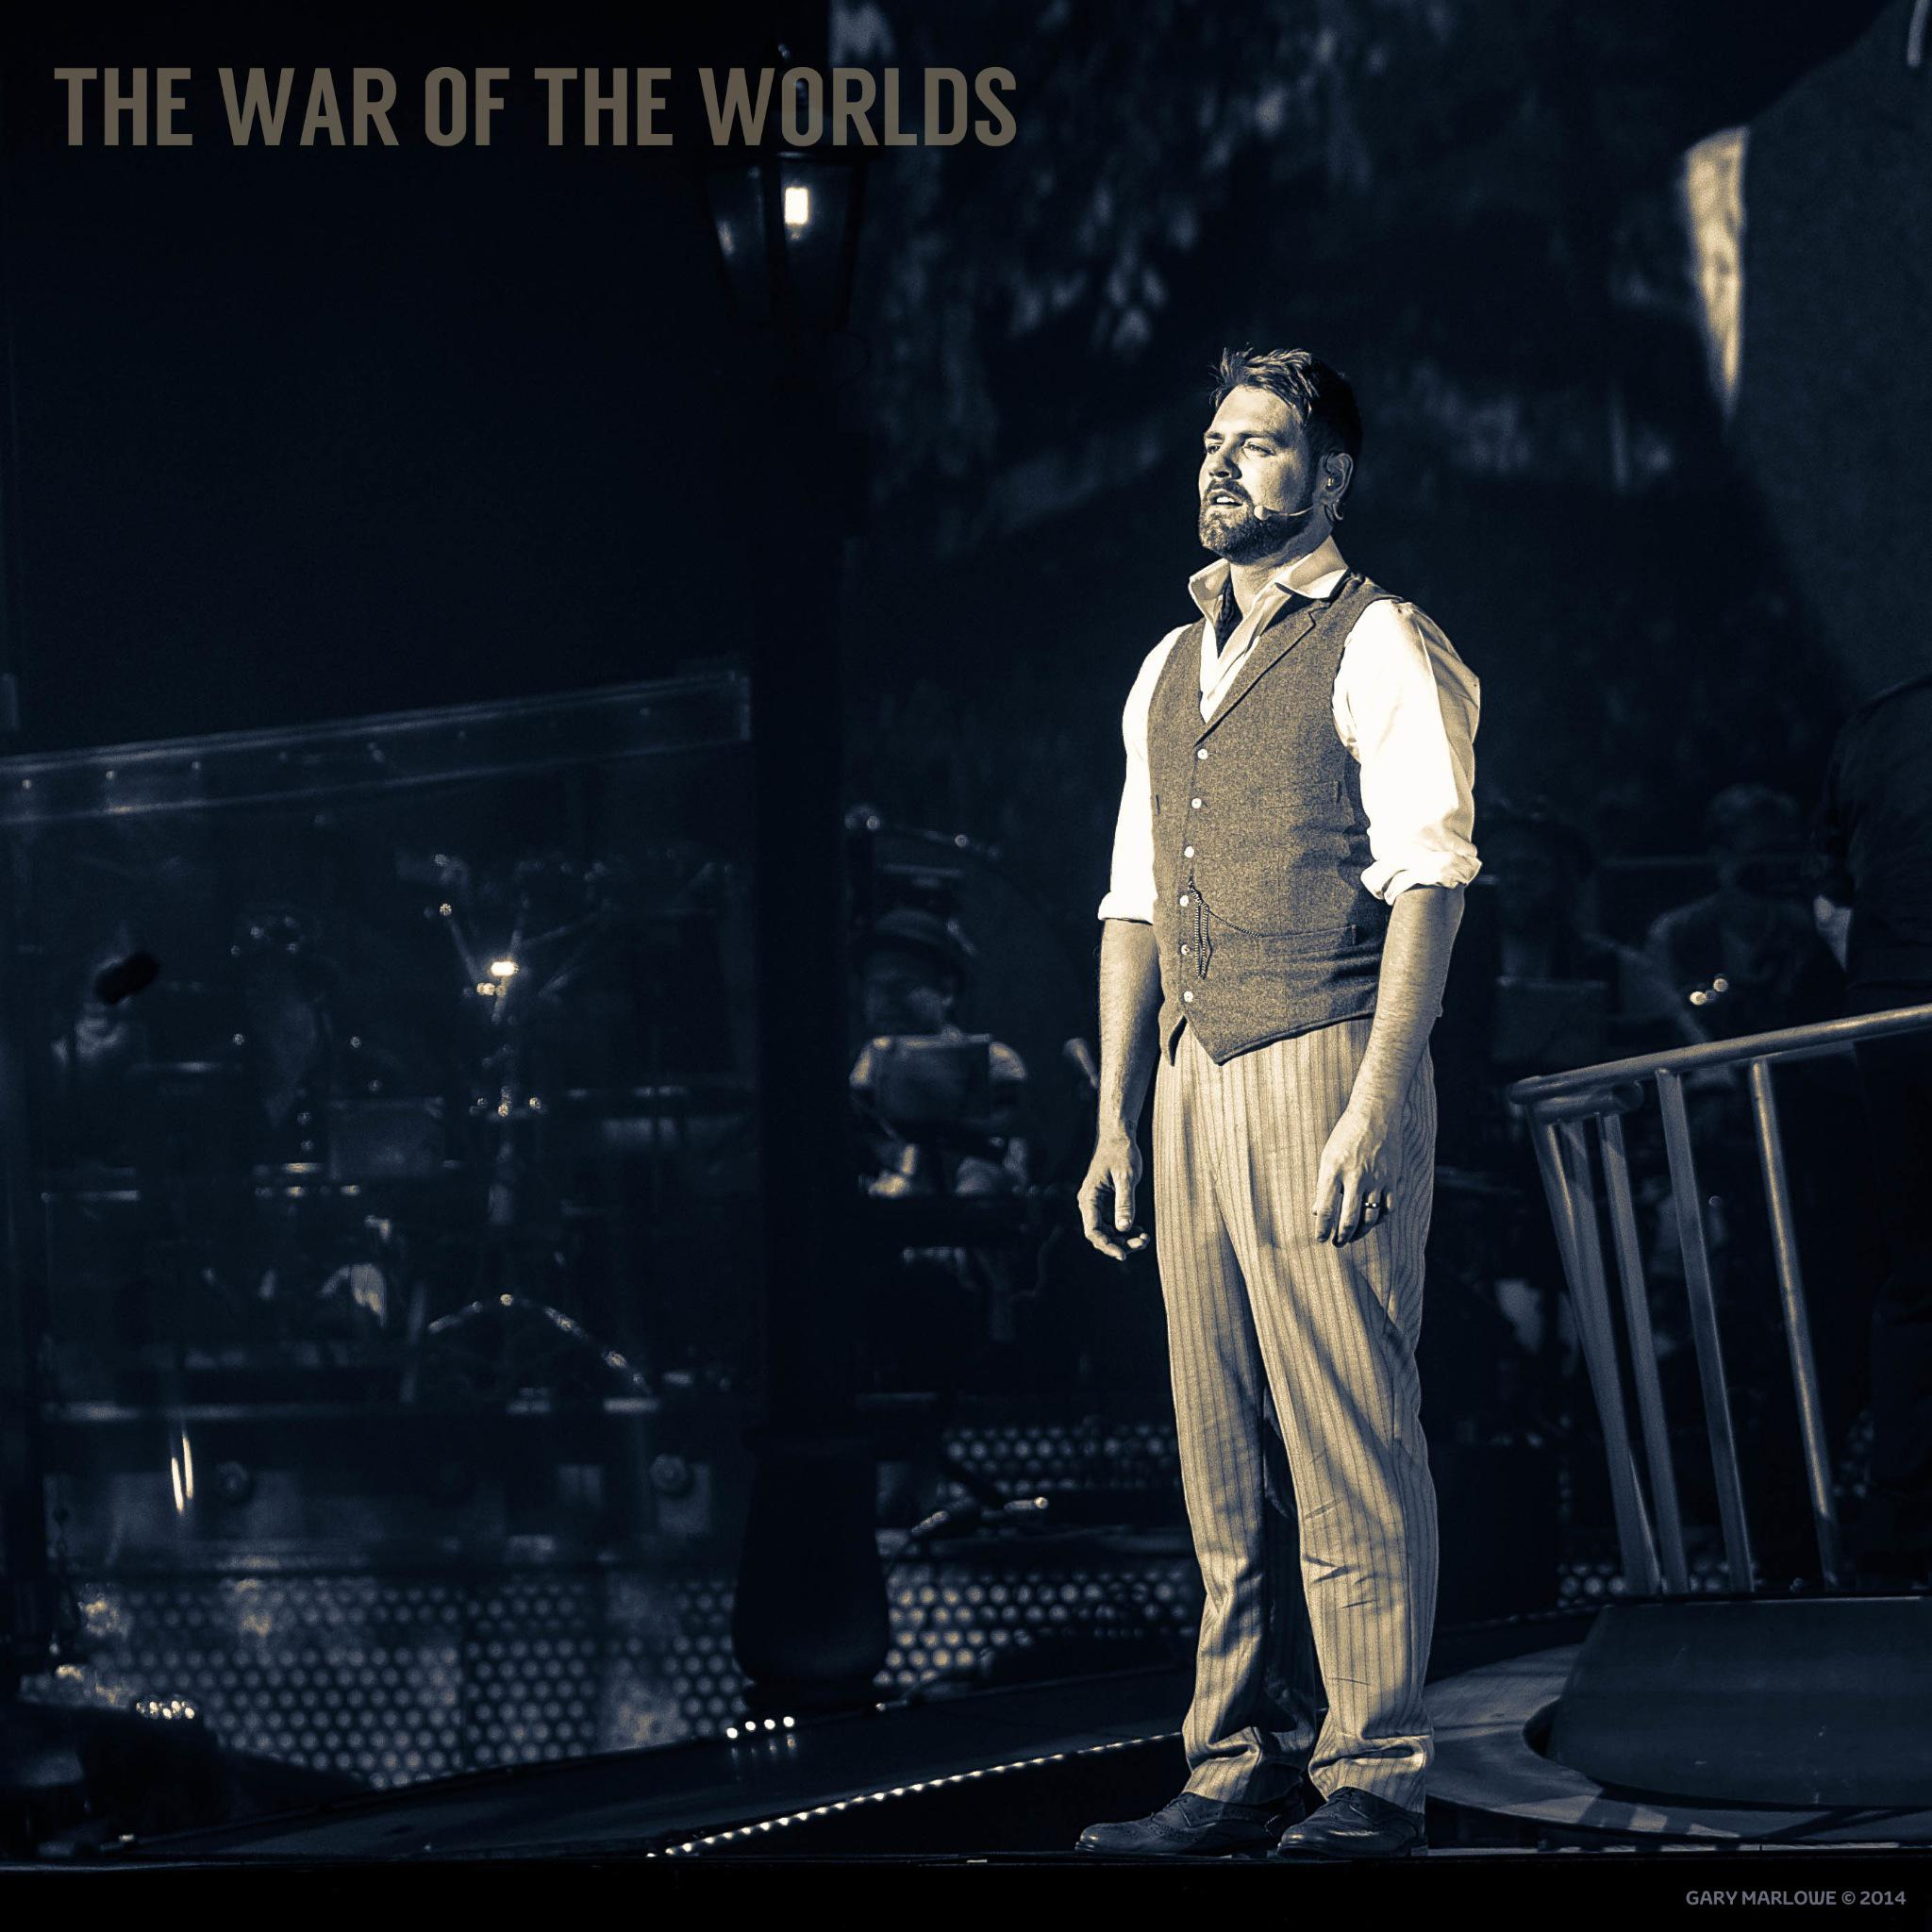 RT @gmarlowe: PHOTO: @BrianMcFadden photographed by Gary Marlowe during The War Of The Worlds at @BrightonCentre @twotwofficial http://t.co…